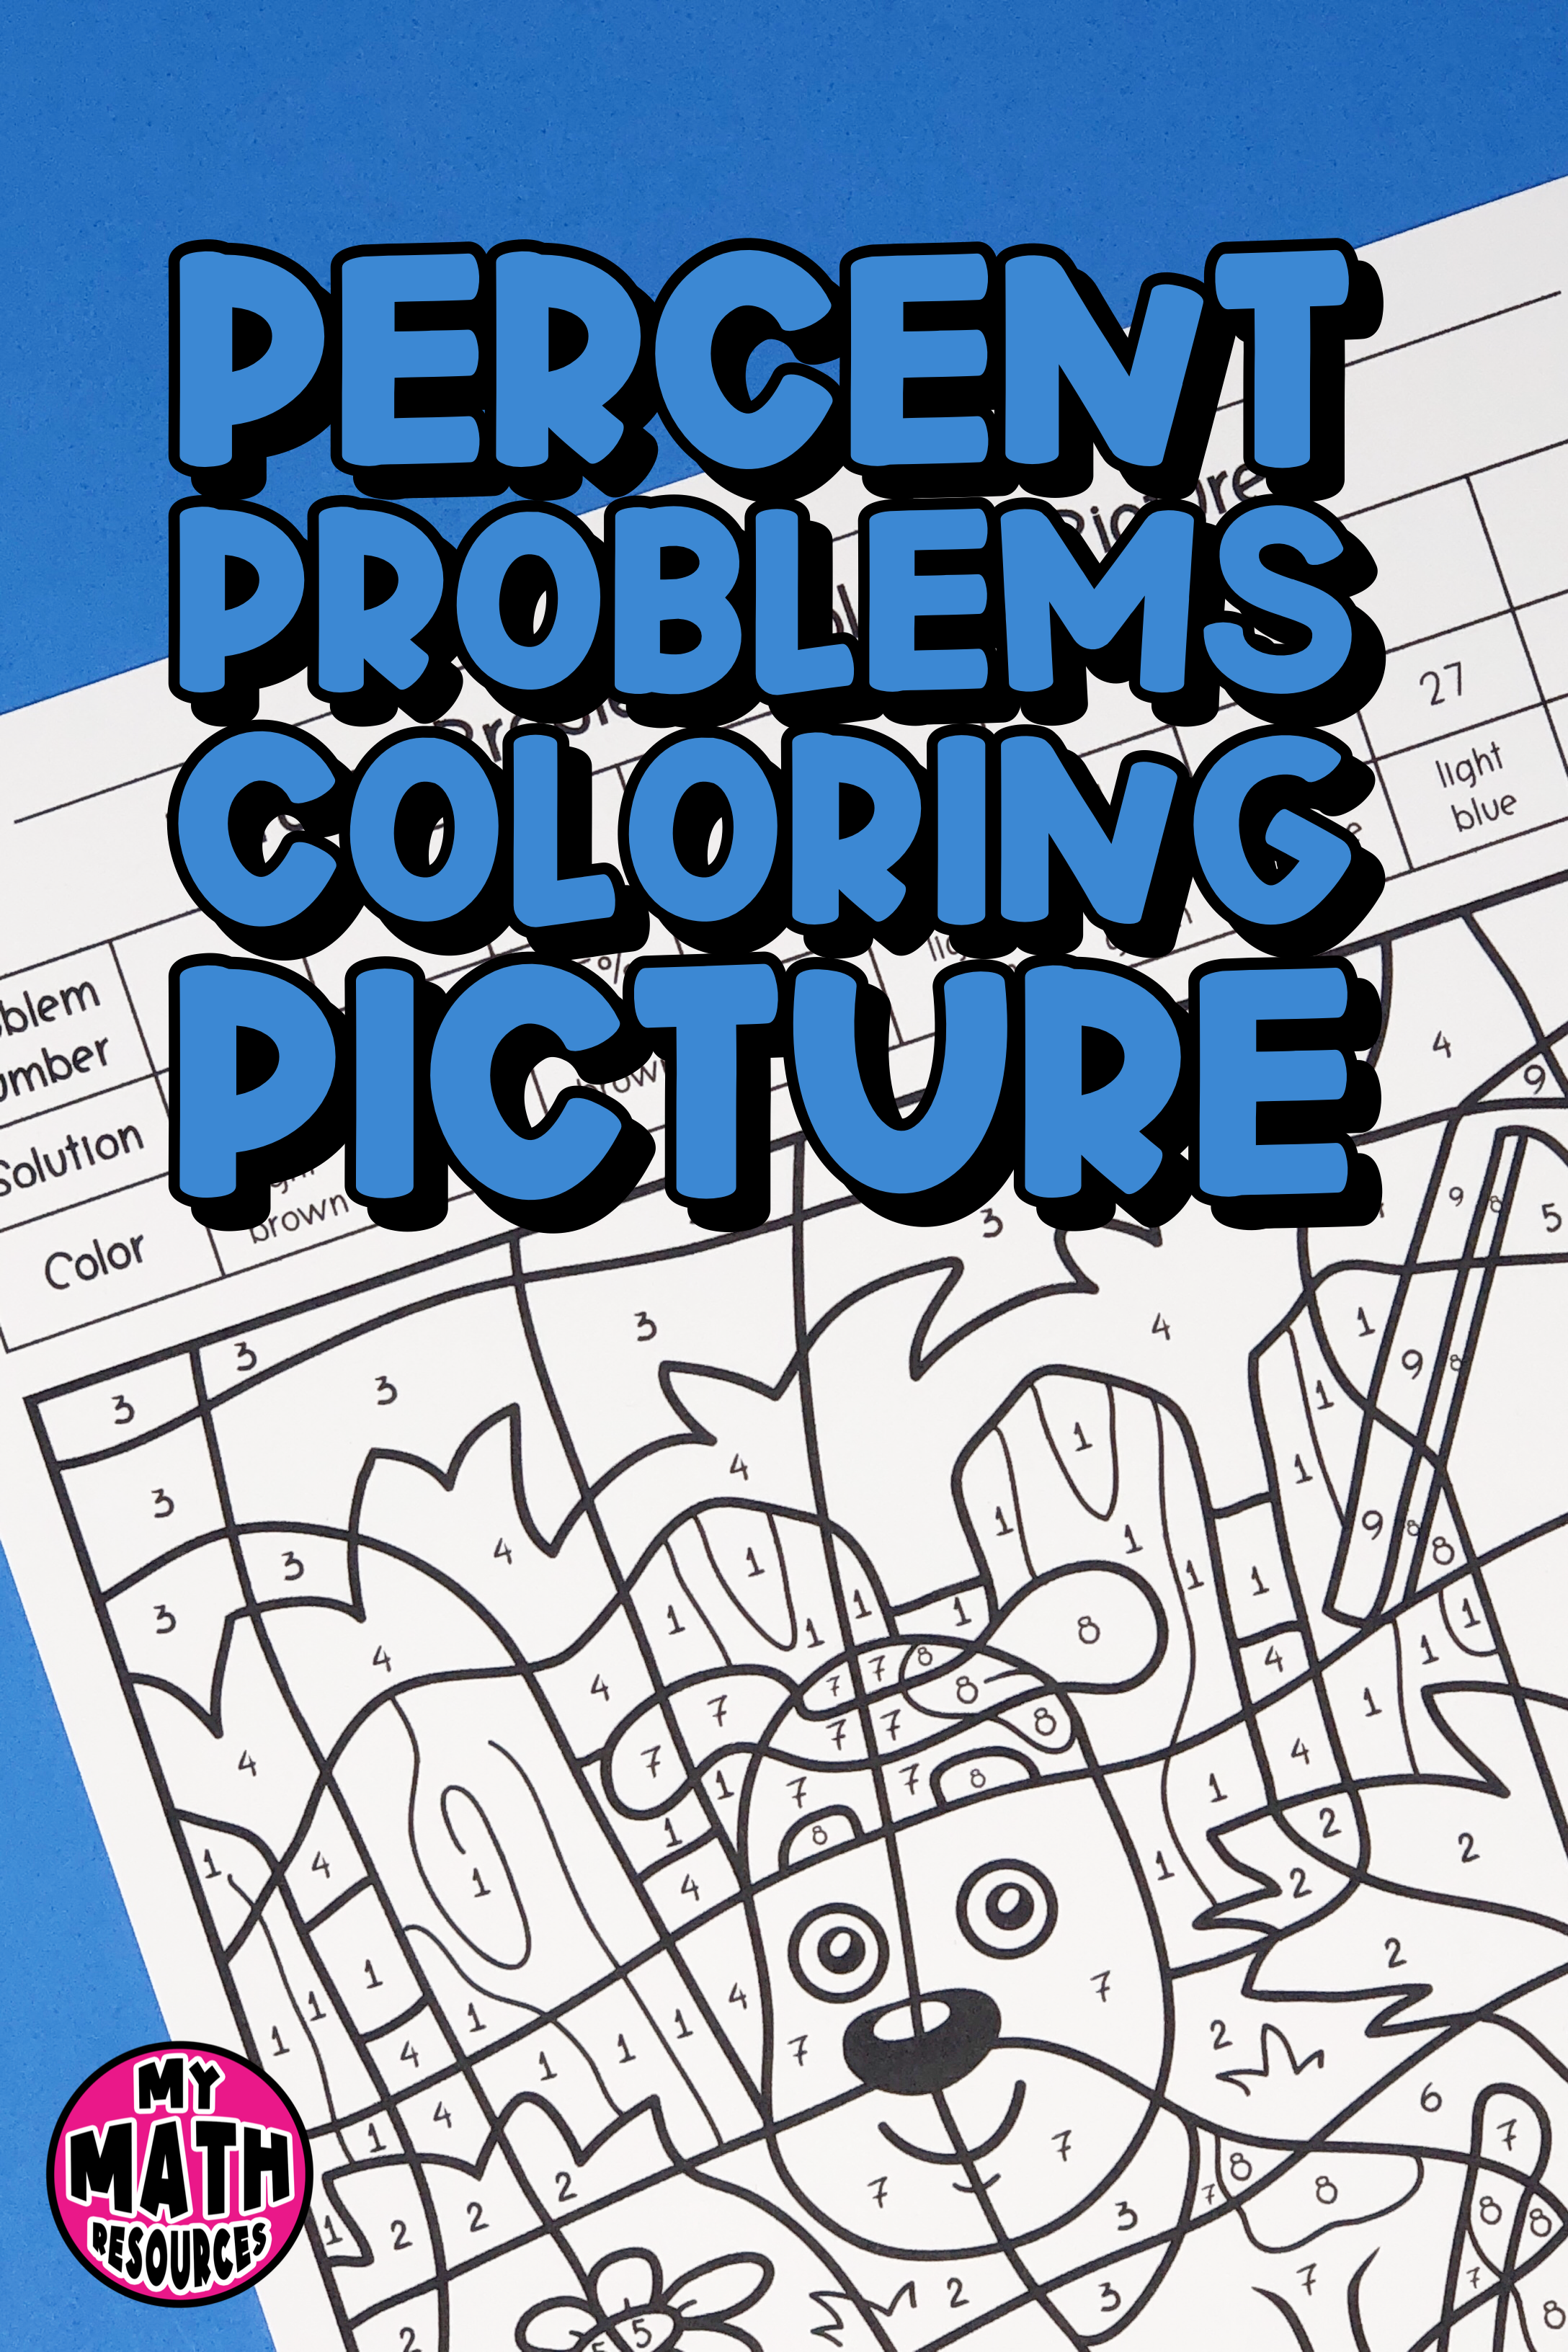 hight resolution of My Math Resources - Percent Problems Coloring Picture Worksheet   Middle  school math teacher